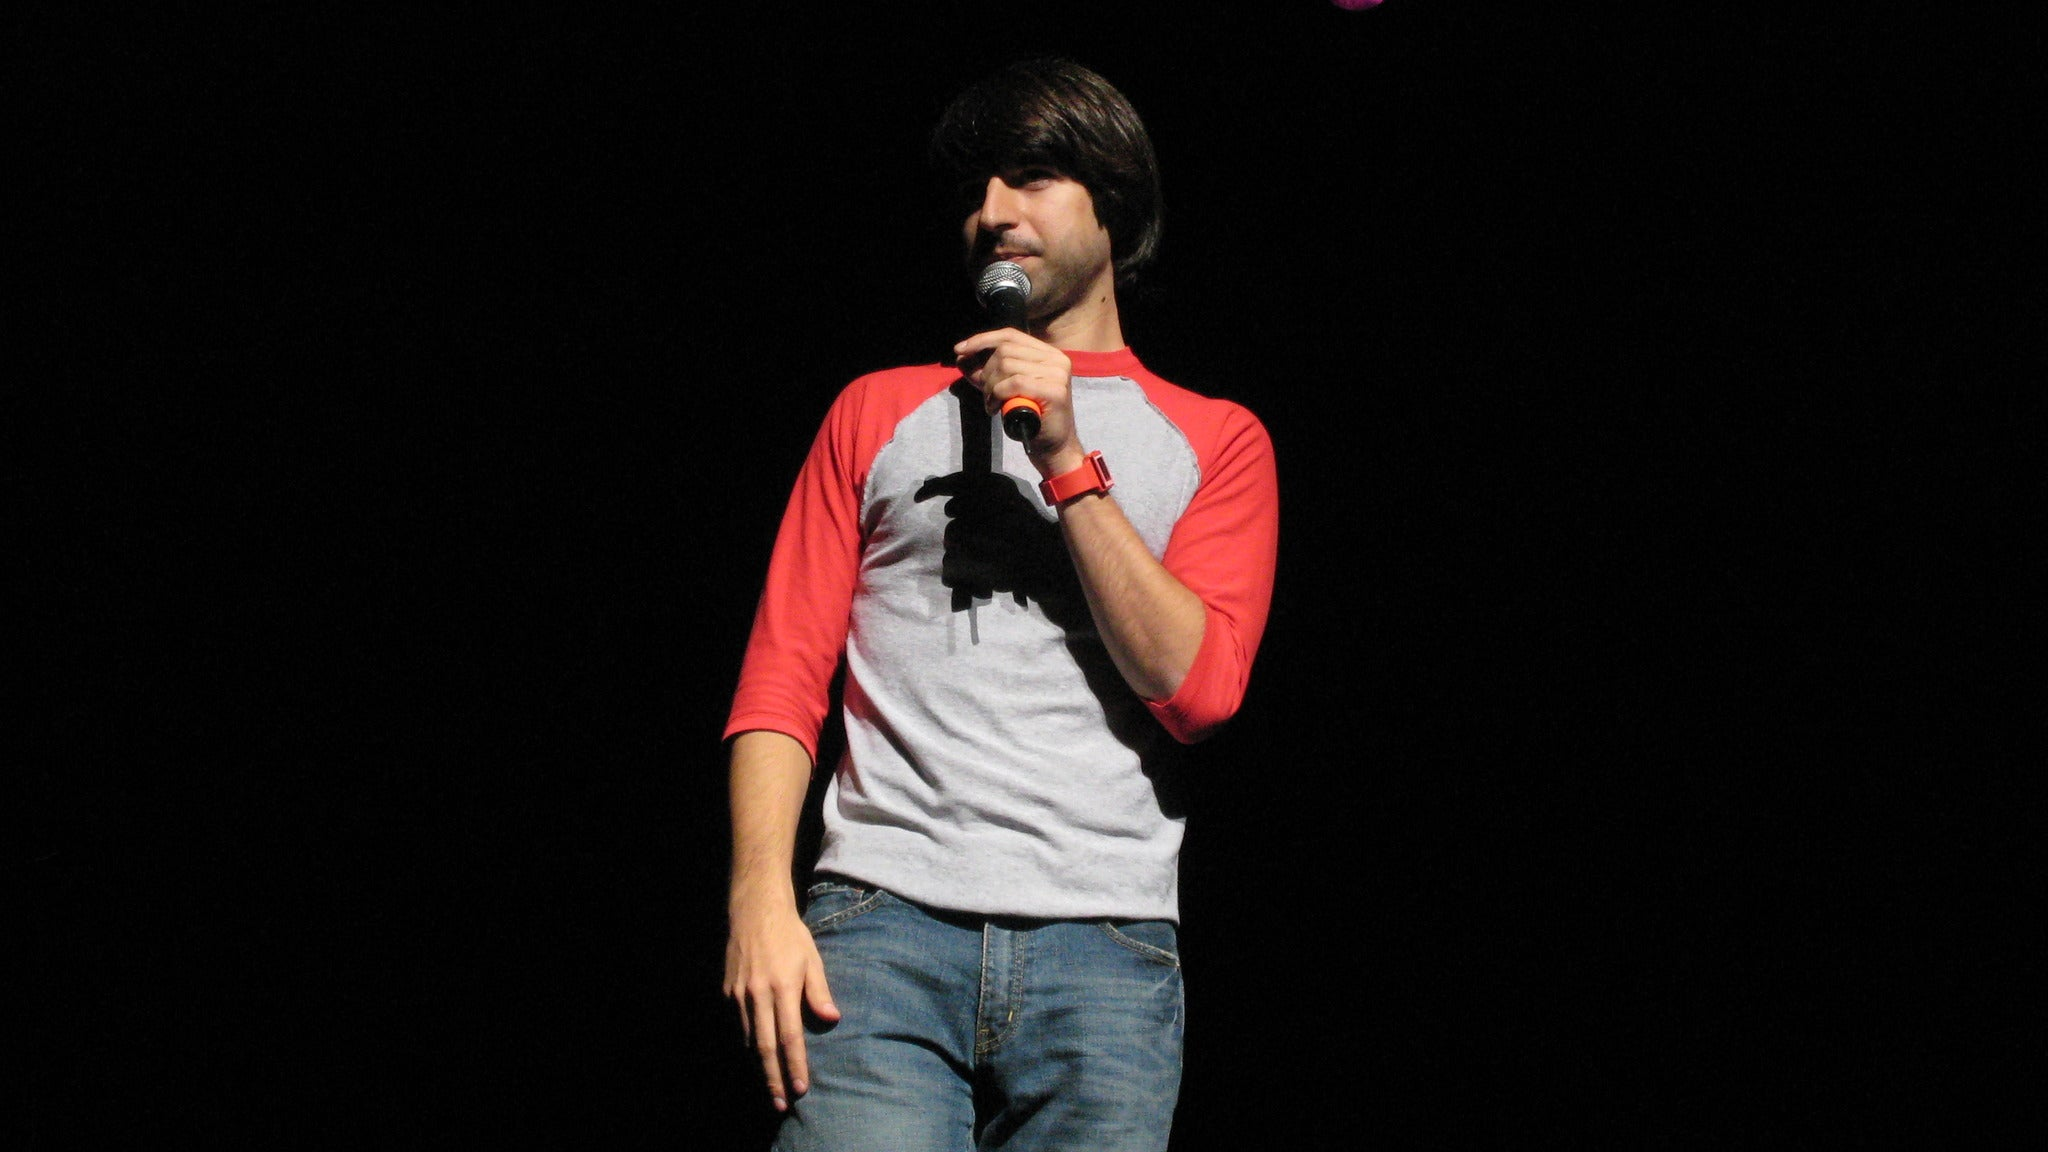 Demetri Martin: Let's Get Awkward Tour at Moore Theatre